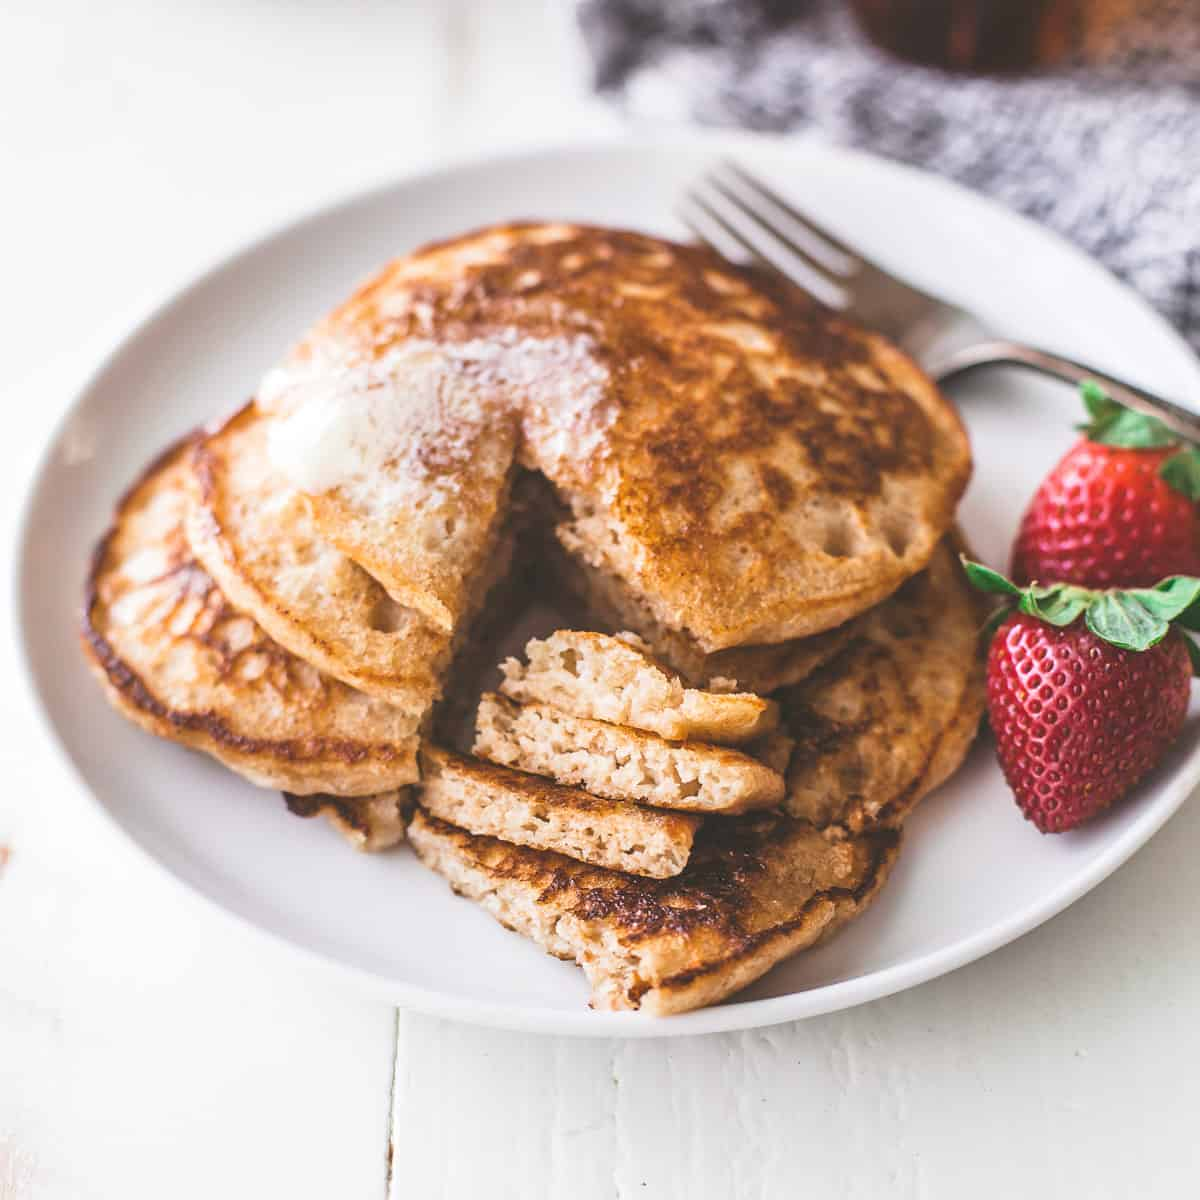 light and fluffy pancakes on a white plate